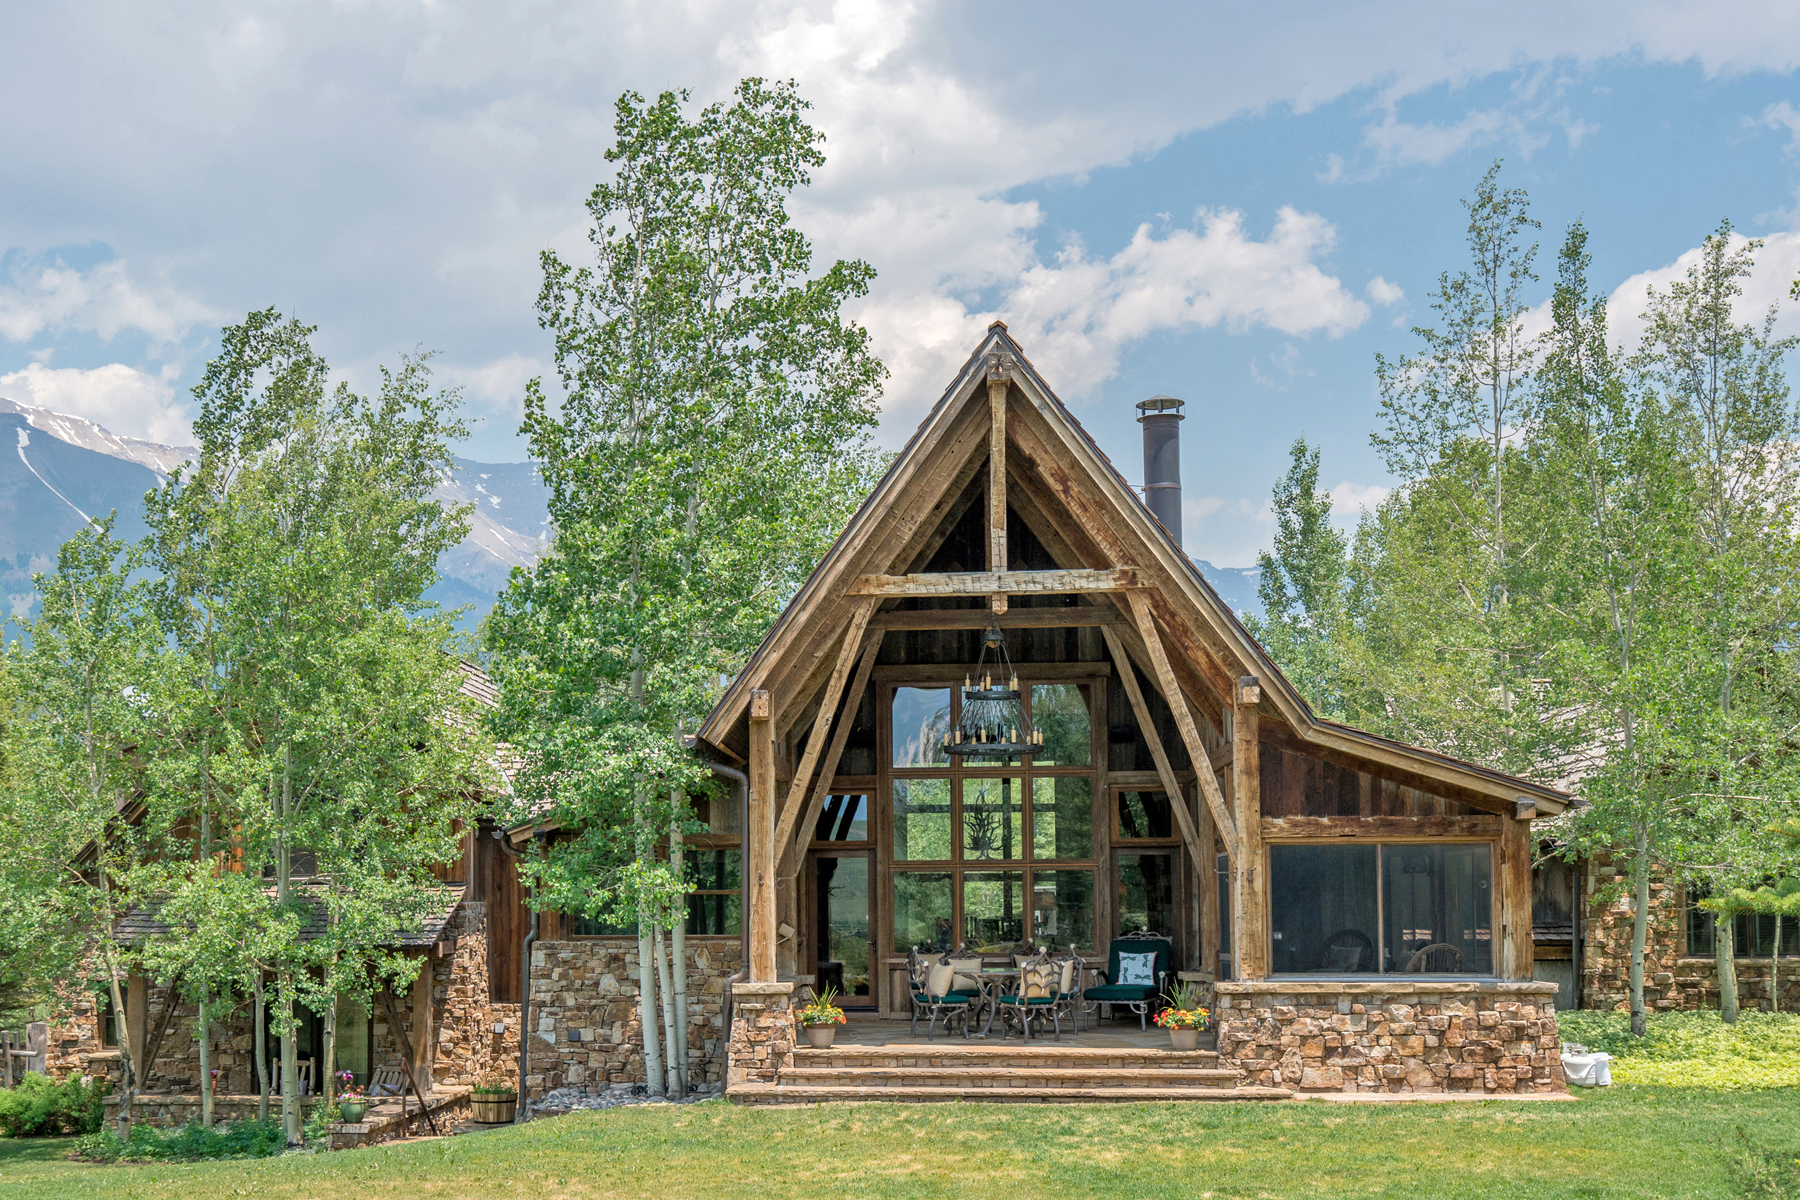 Single Family Home for Sale at 111 Adams Way Telluride, Colorado, 81435 United States